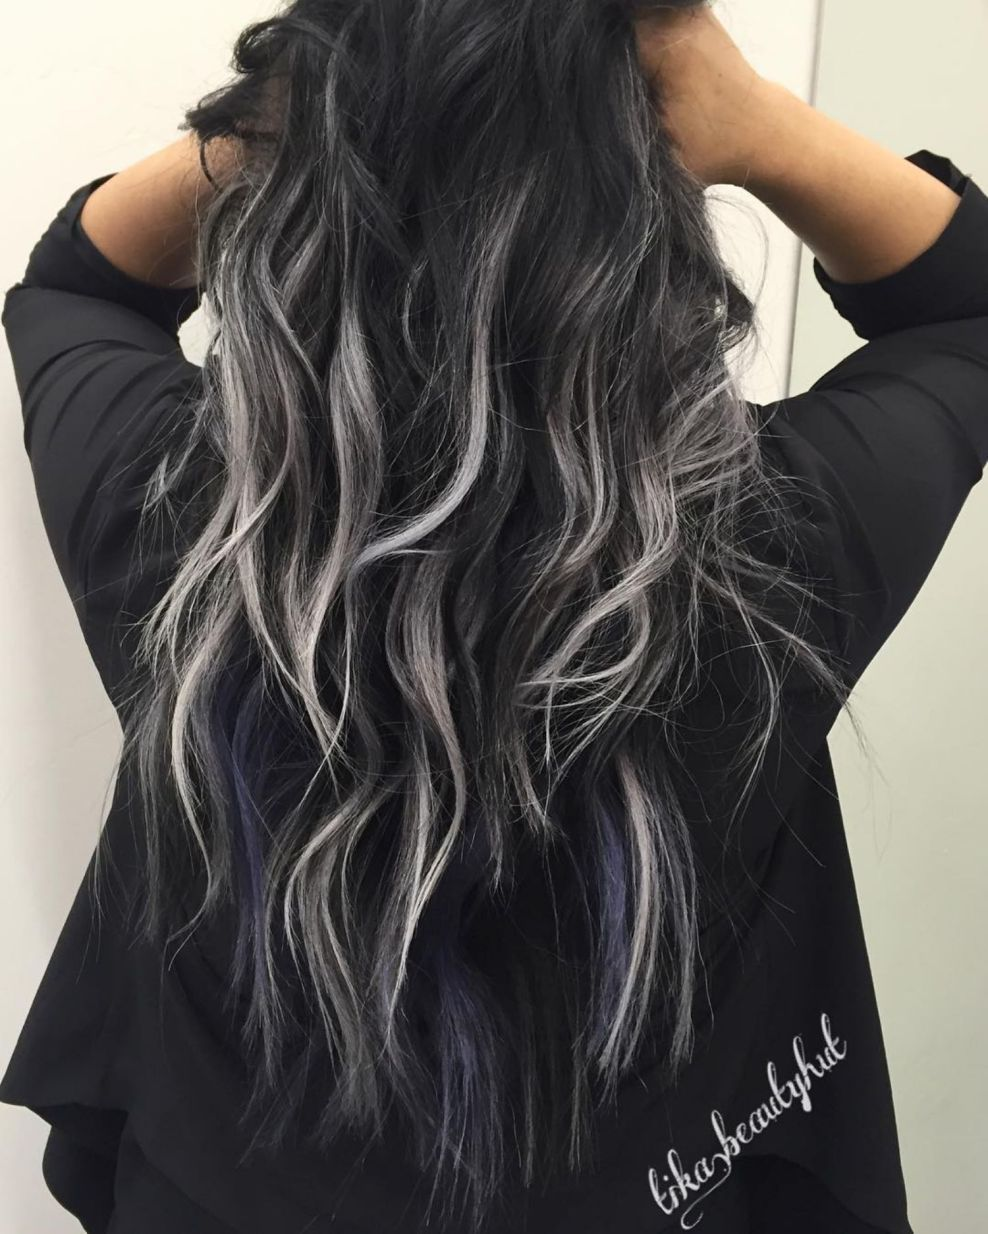 60 Shades Of Grey Silver And White Highlights For Eternal Youth Hair Styles Long Hair Styles Curly Hair Styles